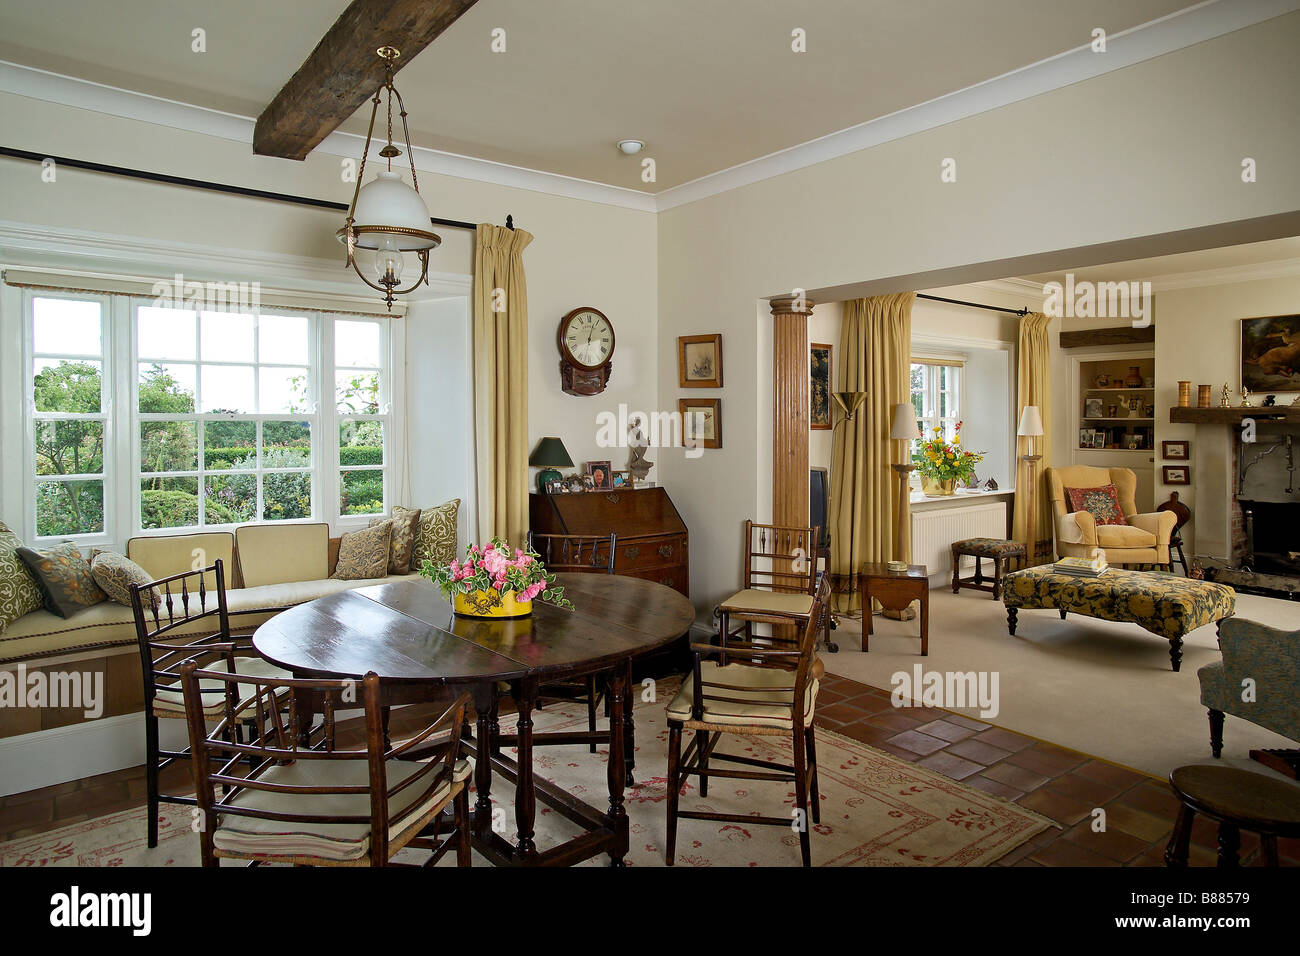 Dining Room Decoration: Drawing Room With Dining Table